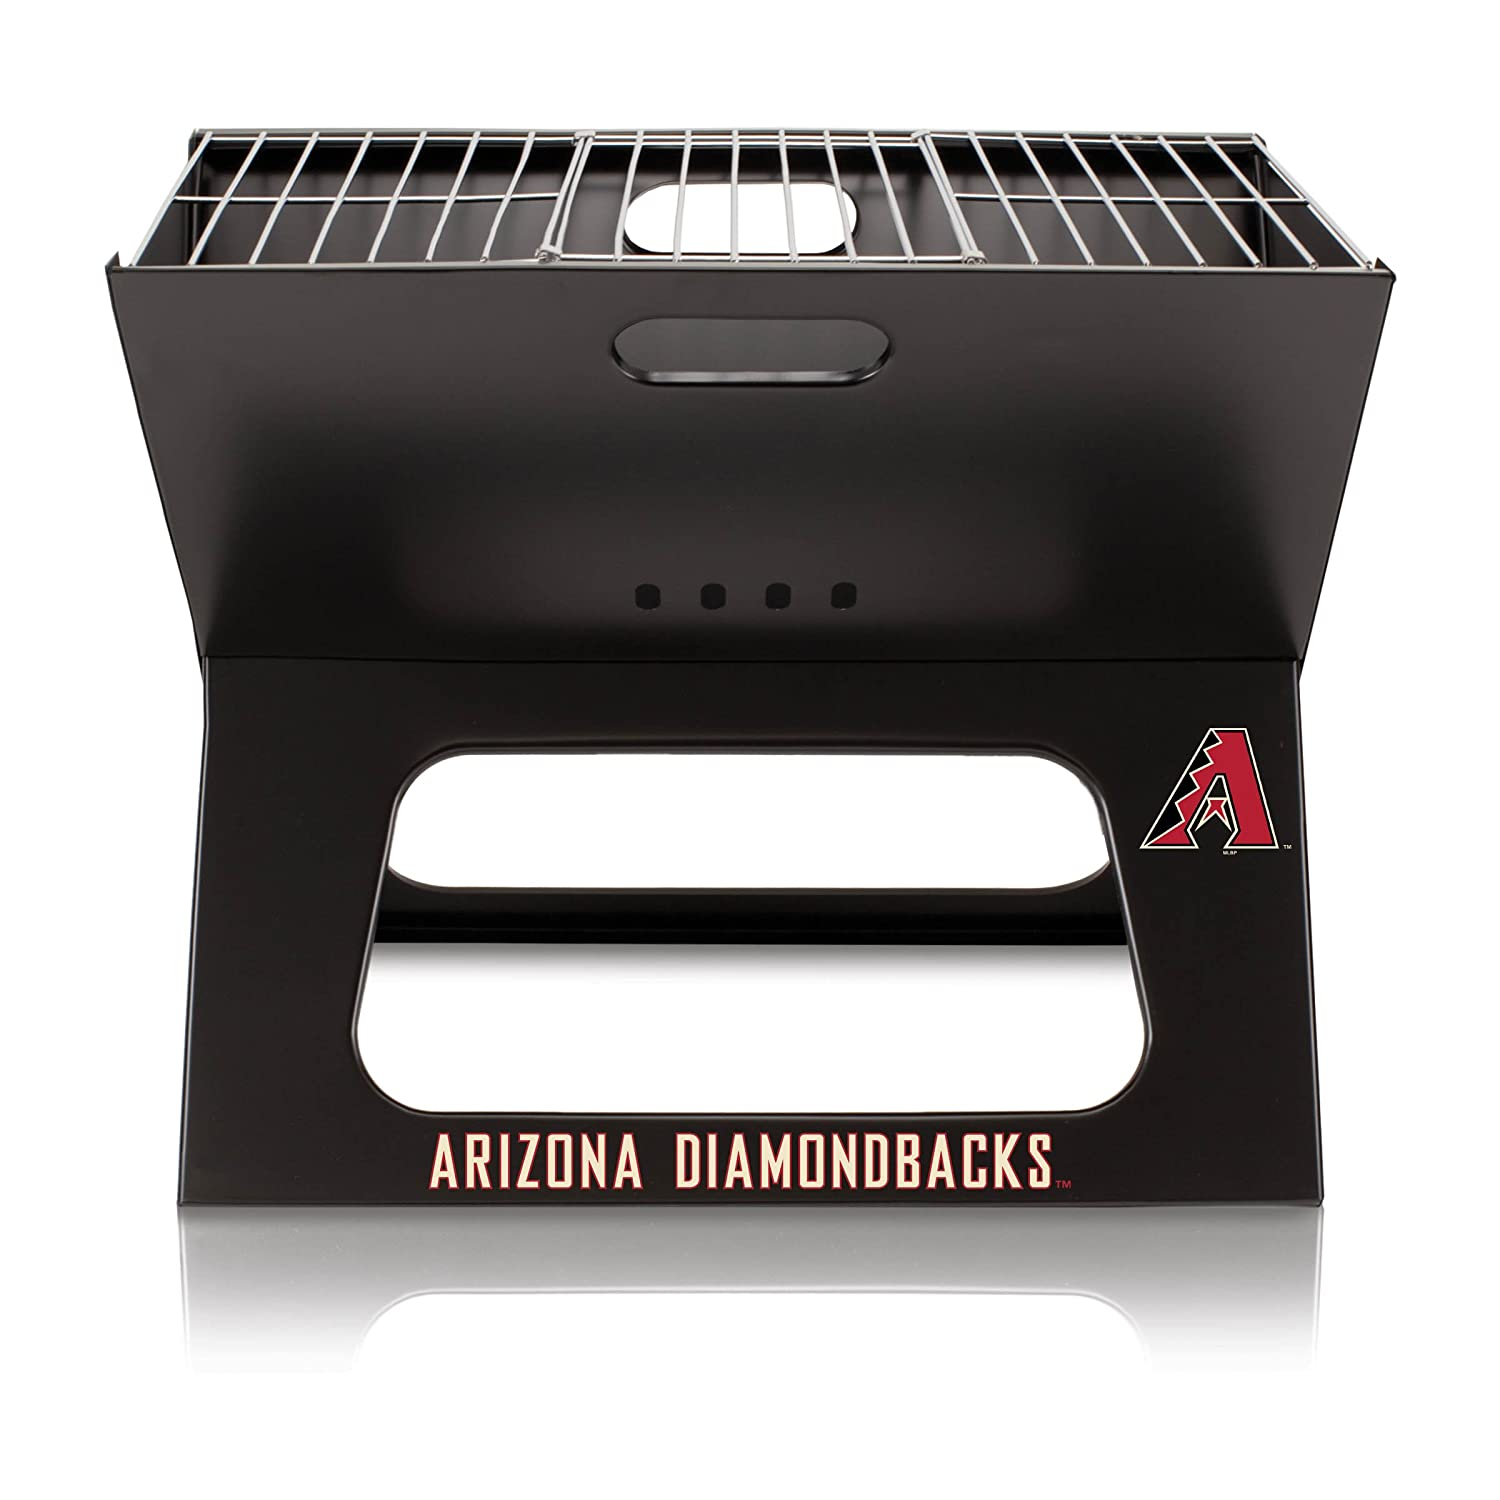 MLB Arizona Diamondbacks Portable Collapsible Charcoal X-Grill B00NQ91092